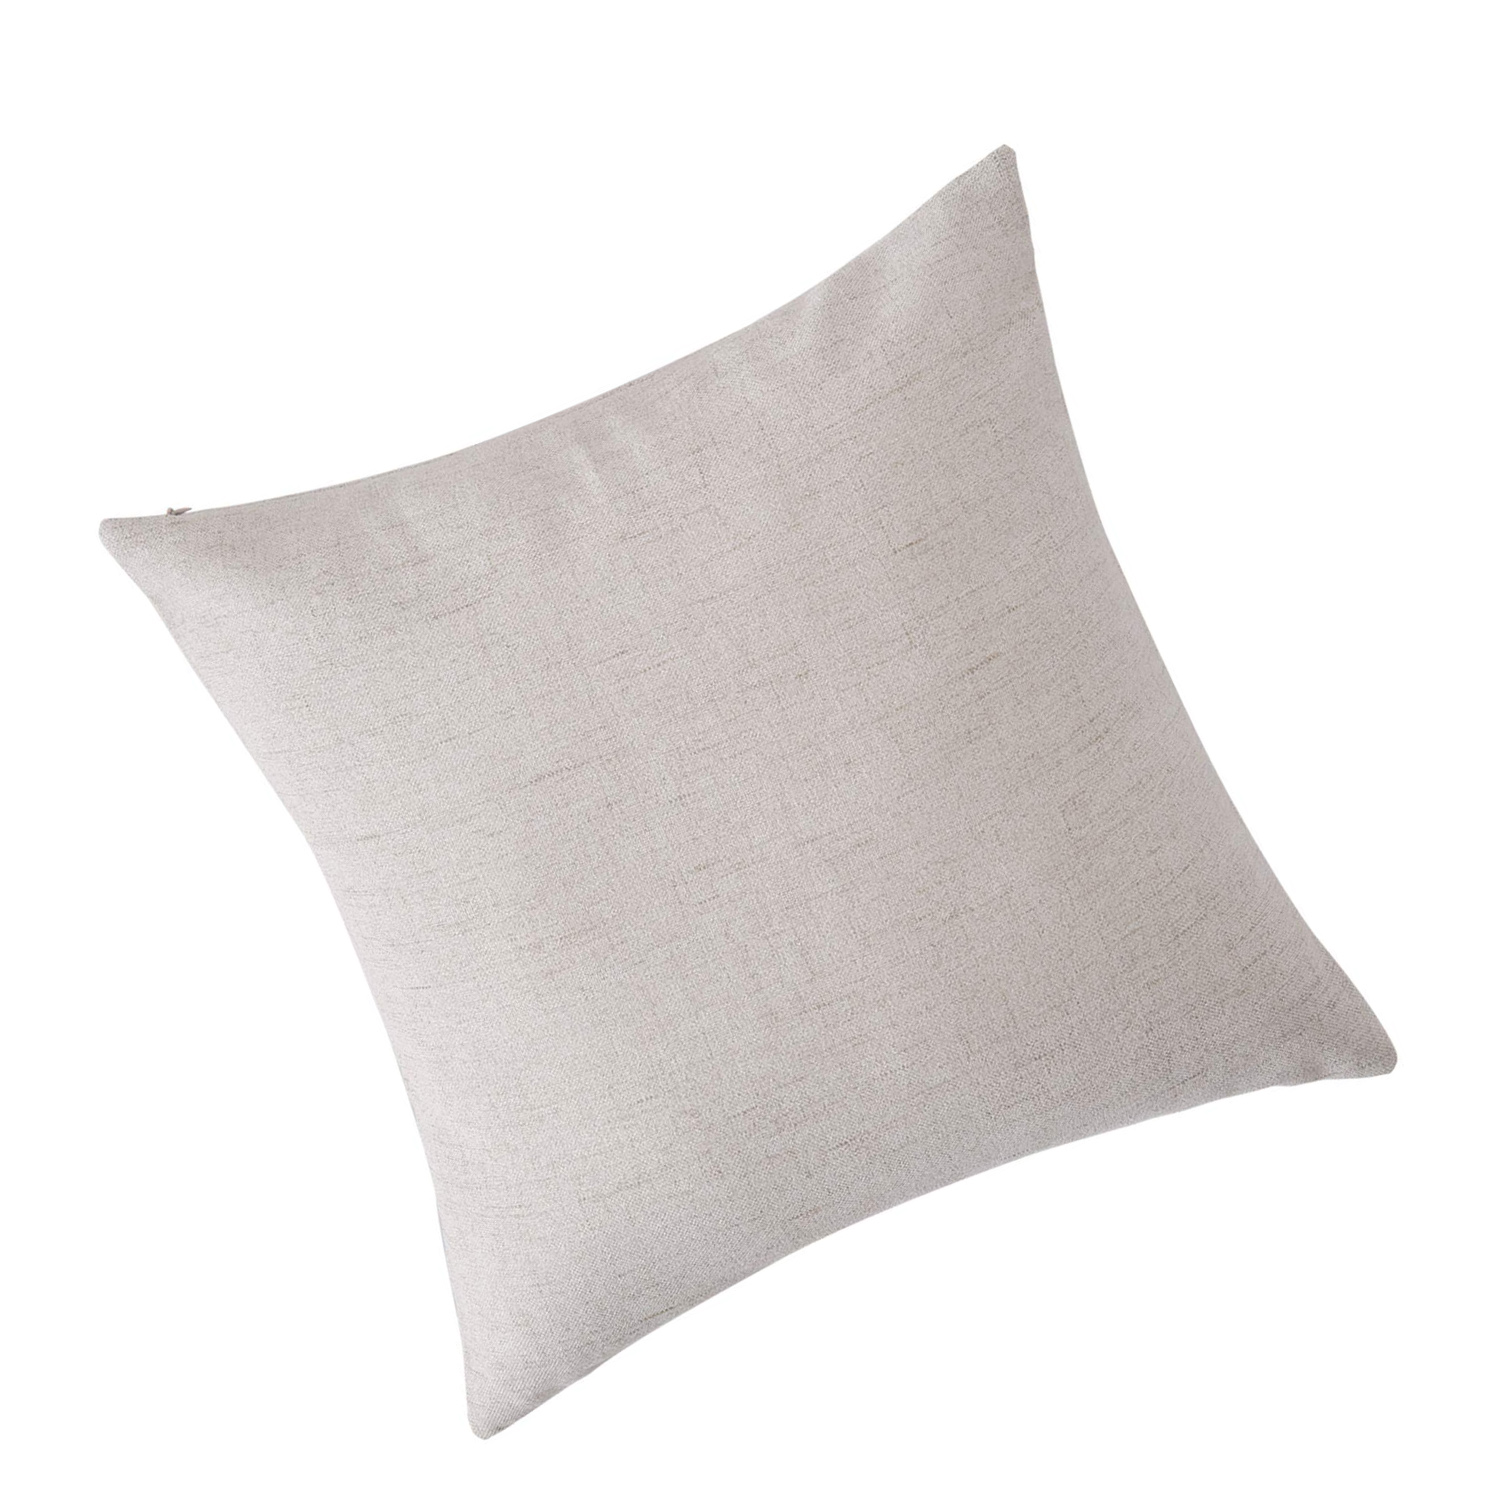 blank pillow covers throw cushion cover faux linen look decorative pillowcases for sofa 18 x 18 inch cream set of 4 no pillow insert walmart com